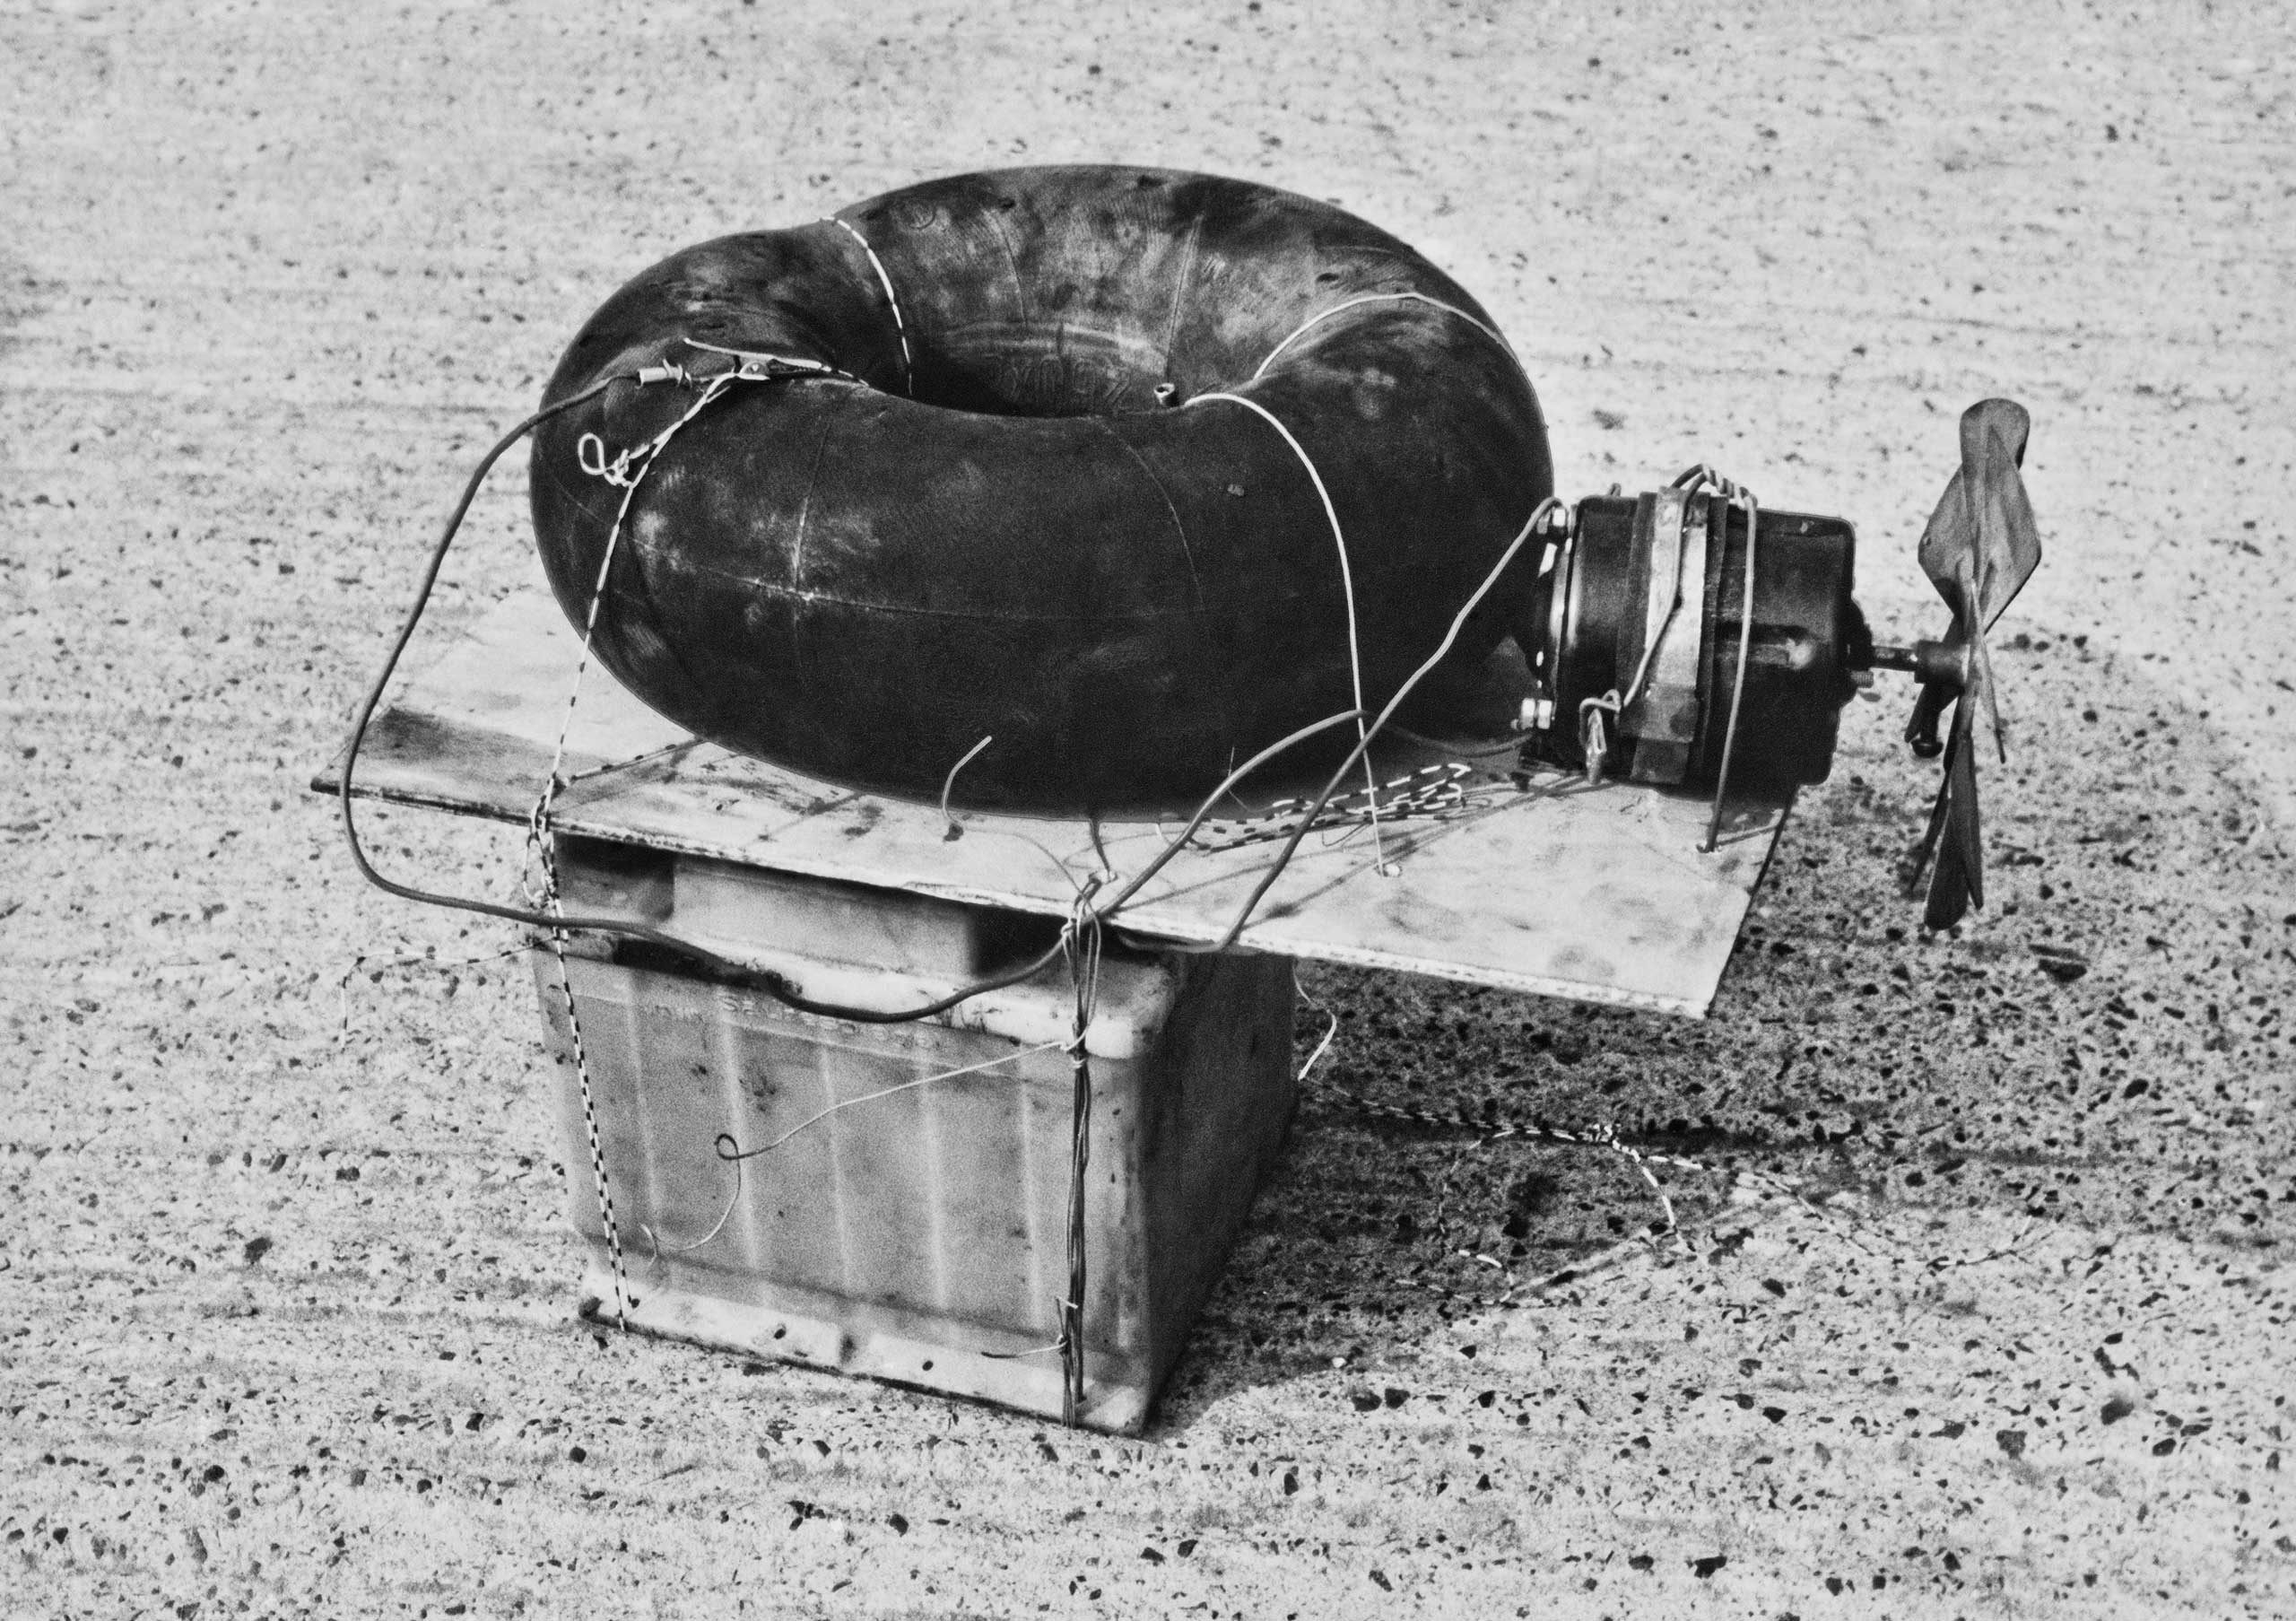 Float made of a car tire tube, fan motor, and car battery by a car body maker from the state enterprise VEB Sachsenring Zwickau. After he was arrested on June 26, 1989, at 9.30 pm, he admitted under interrogation that he had wanted to escape via the Baltic Sea at Boltenhagen the same evening.